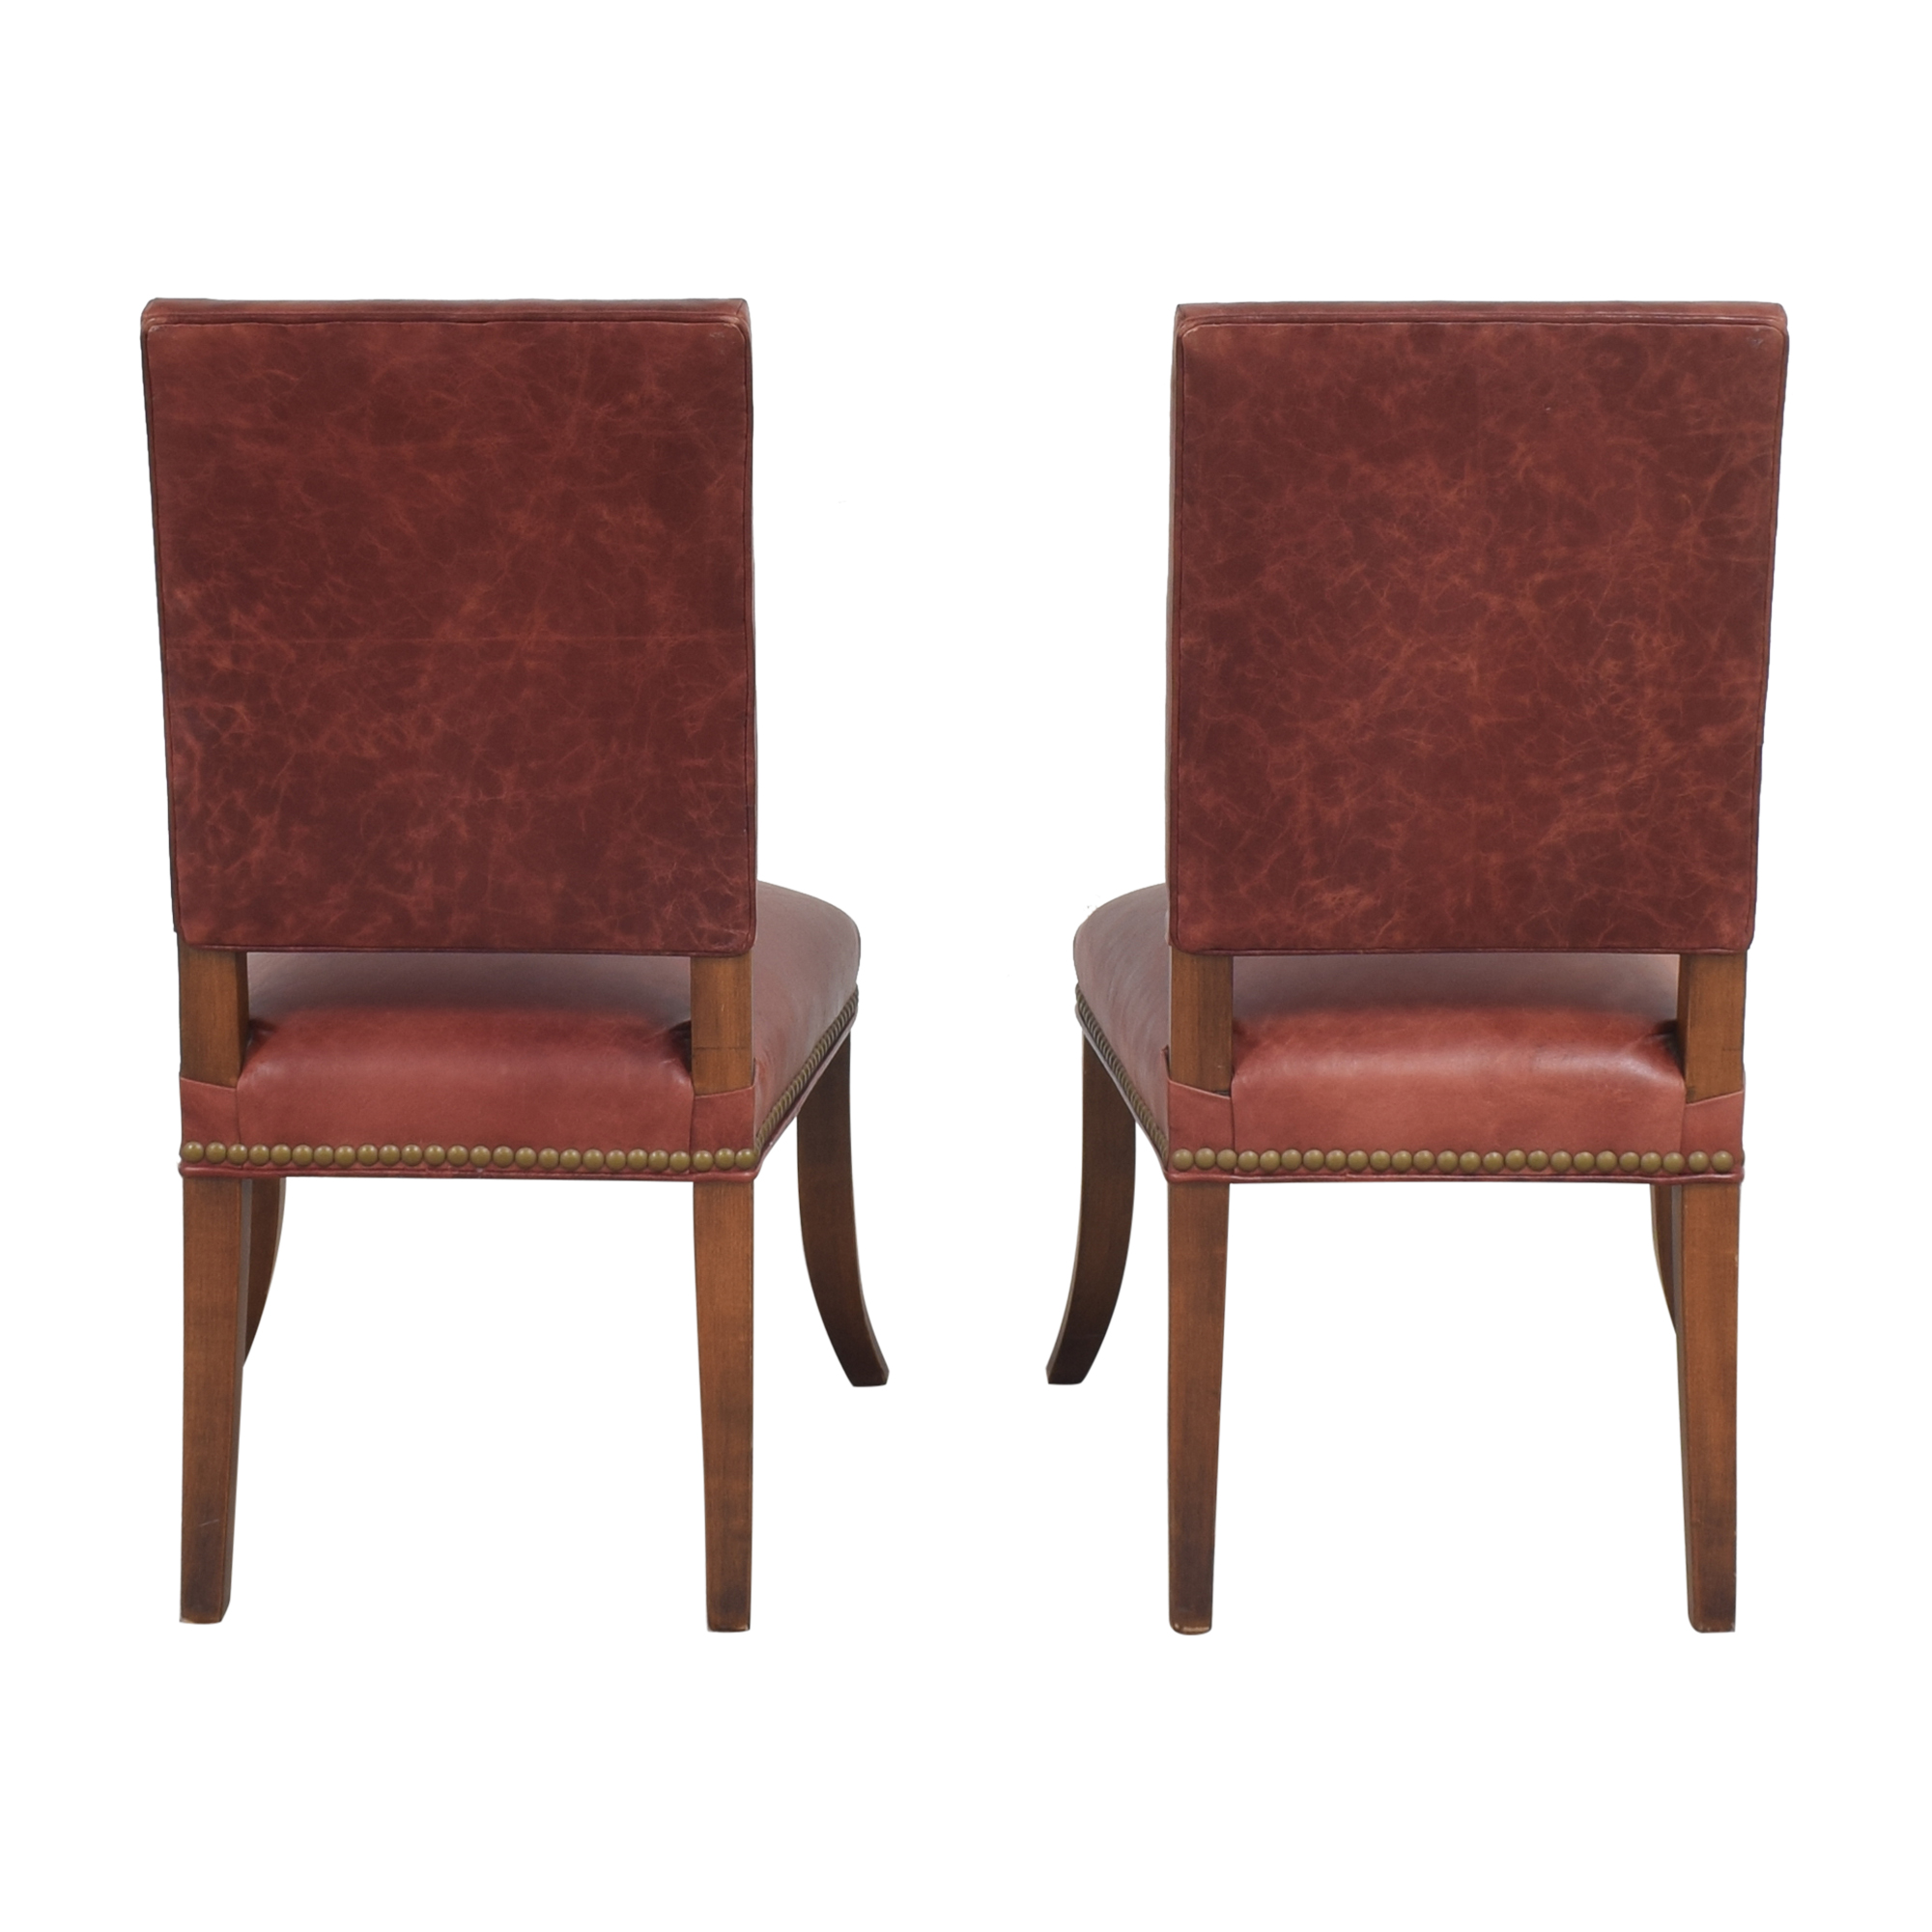 Ethan Allen Ethan Allen Nailhead Dining Side Chairs on sale